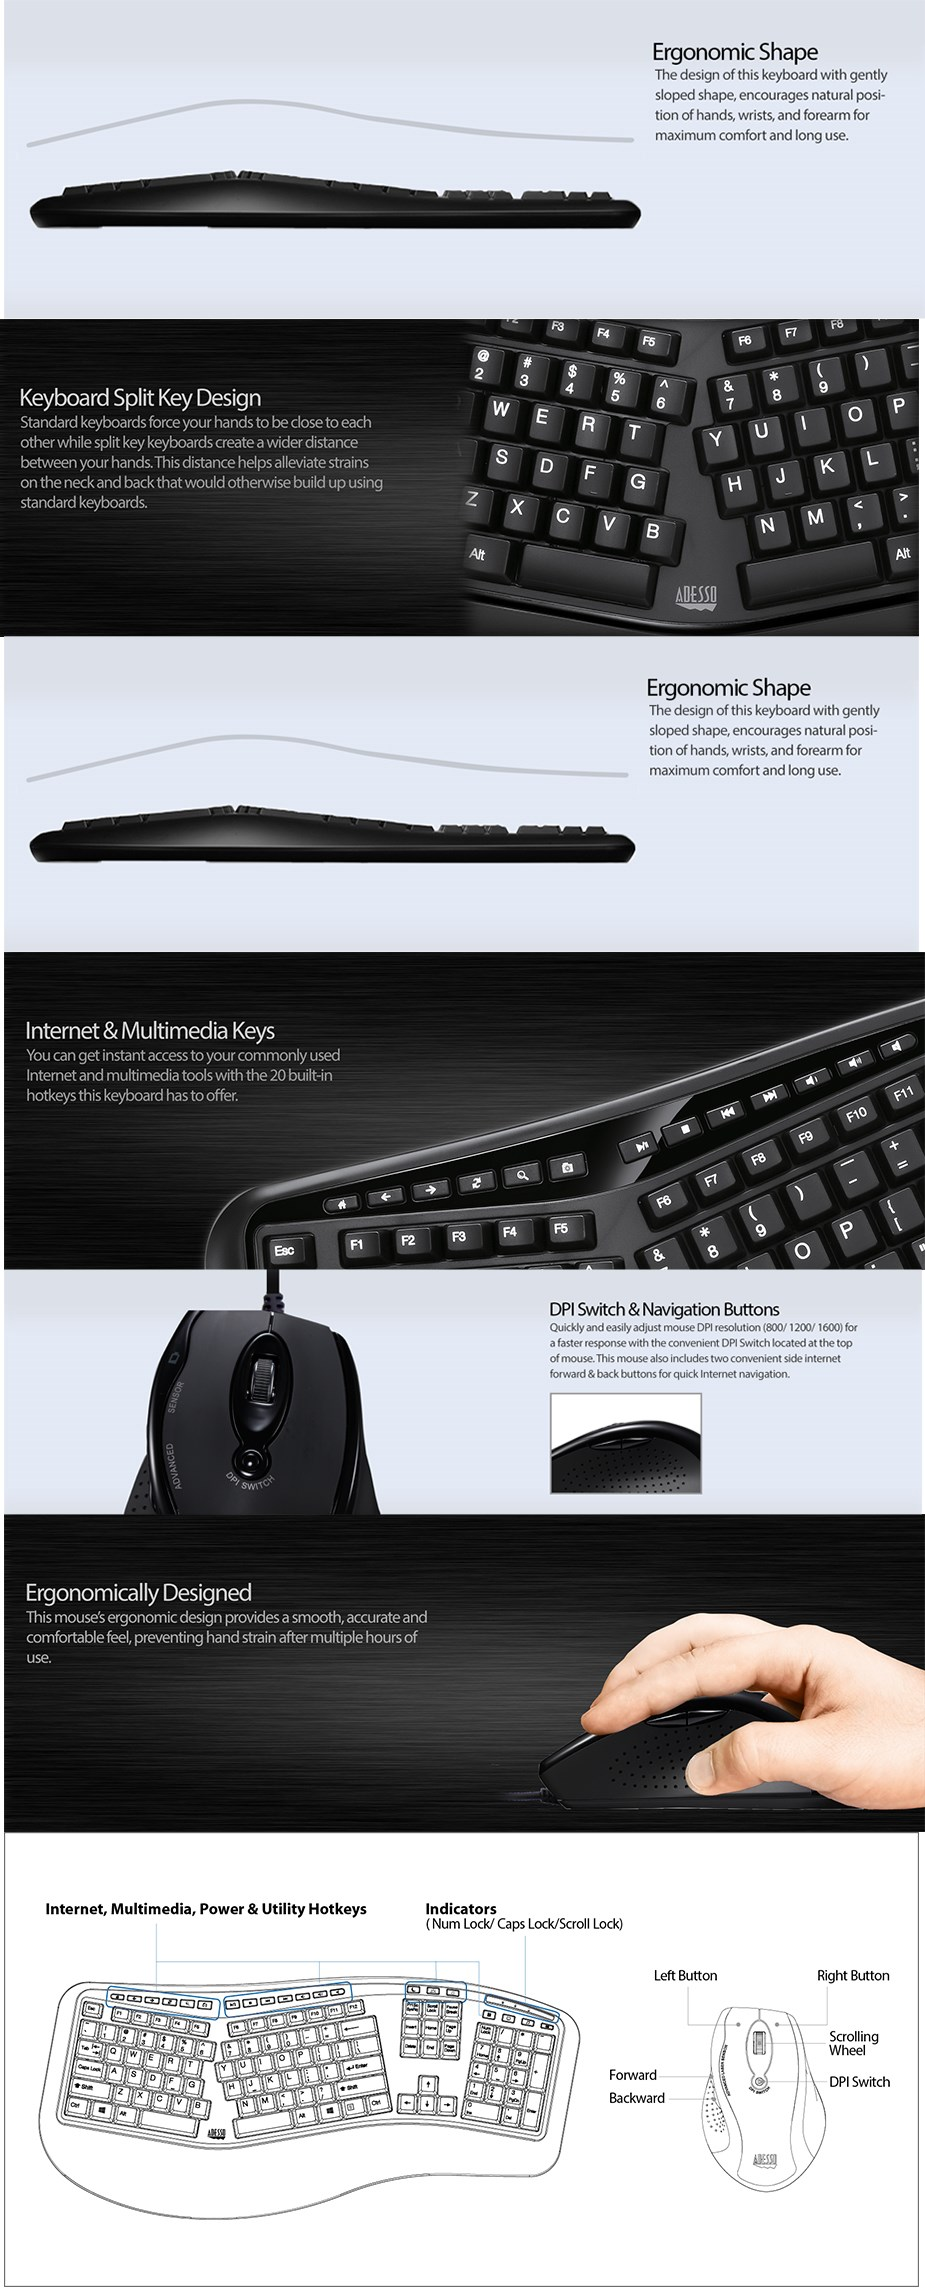 Adesso Wired USB Ergonomic Split 105-Key Keyboard + Optical Mouse Combo - Desktop Overview 1